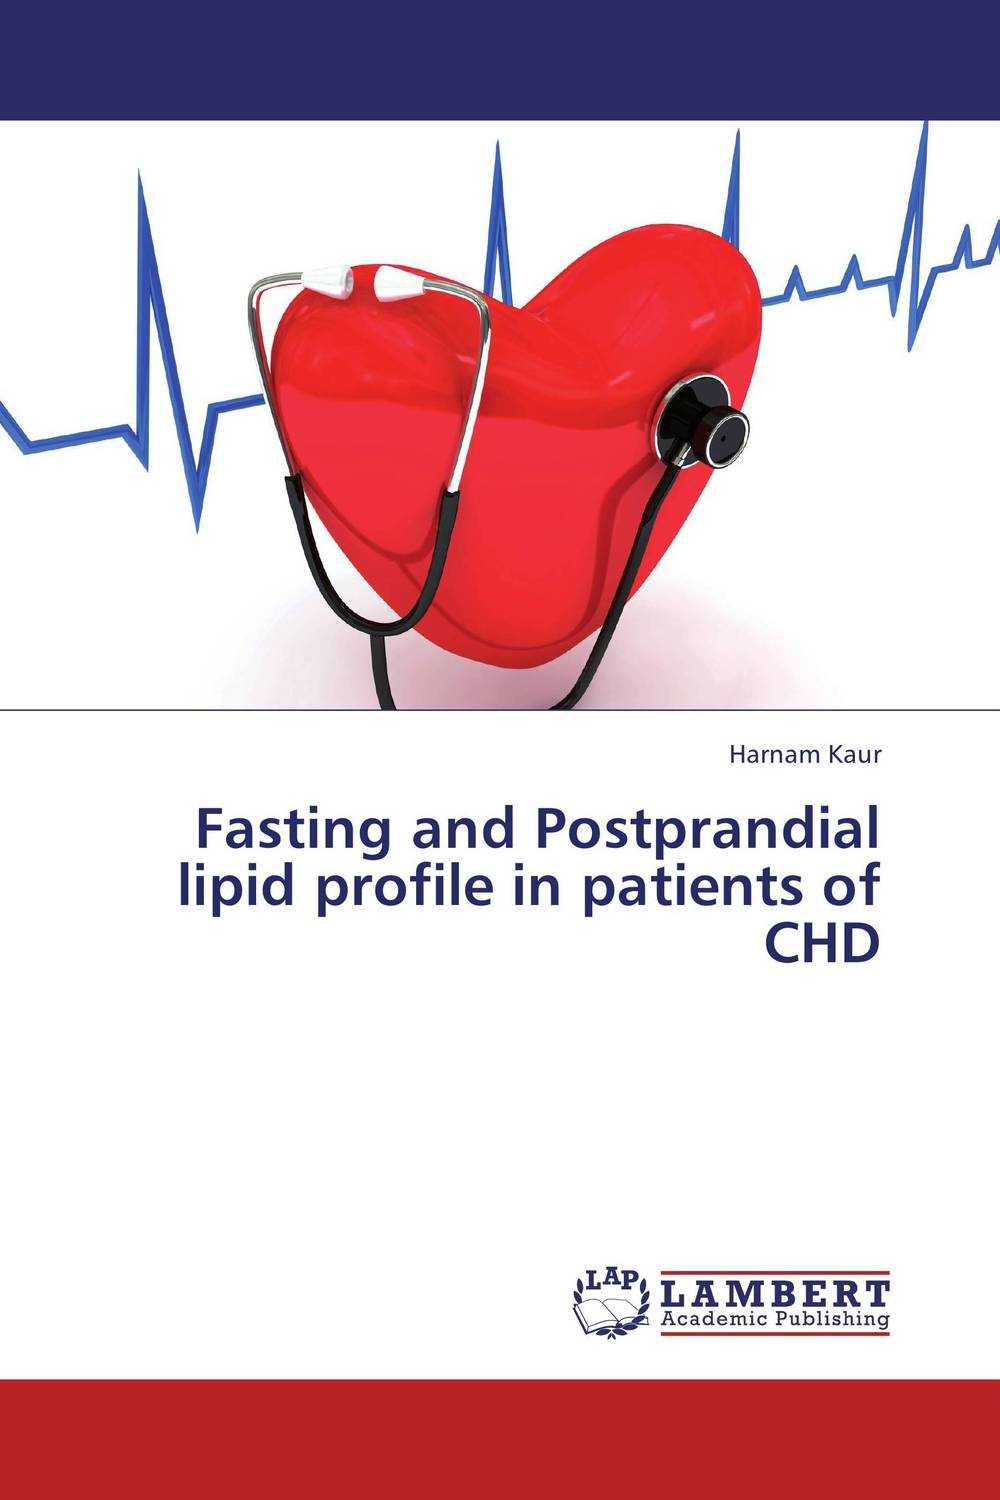 Fasting and Postprandial lipid profile in patients of CHD seduced by death – doctors patients